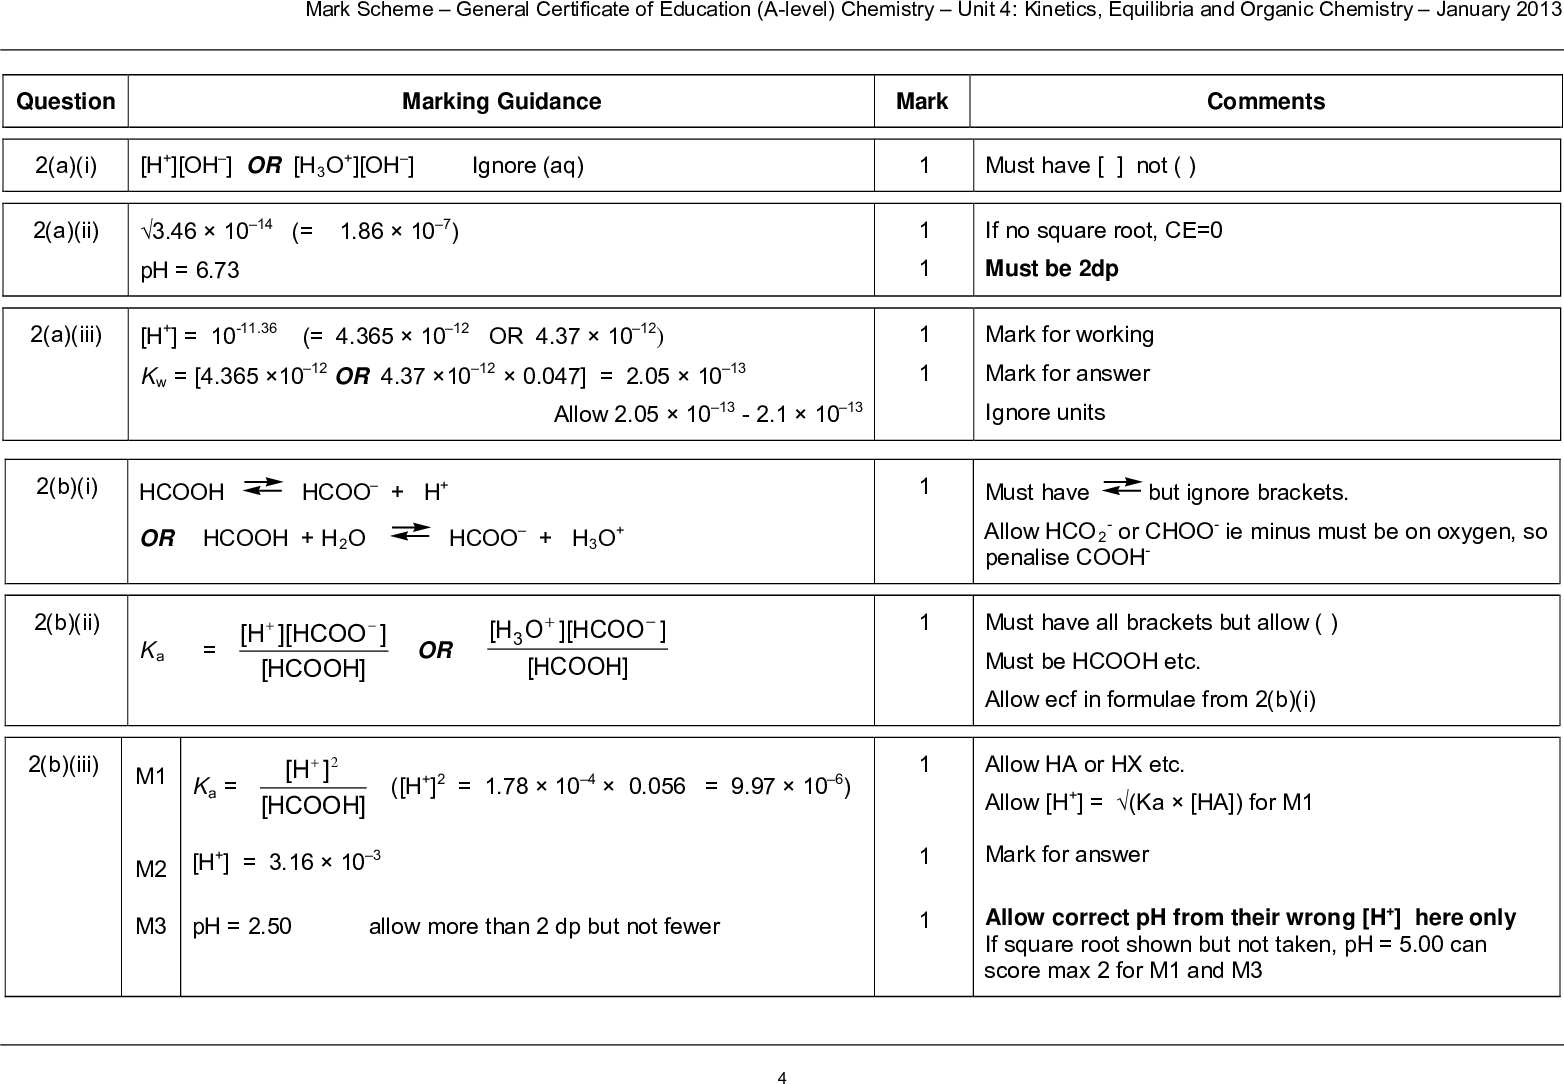 mark scheme general certificate of education a level chemistry unit kinetics equilibria and organic chemistry january question a i a ii marking guidance h oh or h o oh ignore aq ph mark comments must have not if no square root ce must be dp mark for working mark for answer ignore units must have allow hco penalise cooh but ignore brackets or choo ie minus must be on oxygen so must have all brackets but allow must be hcooh etc allow ecf in formulae from b i allow ha or hx etc allow h ka ha for m mark for answer allow correct ph from their wrong h here only if square root shown but not taken ph can score max for m and m a iii h or kw or allow b i hcooh or hcooh h o hcoo h hcoo h o b ii ka hcoo h hcooh or o h hcoo hcooh b iii m ka h hcooh h m h m ph allow more than dp but not fewer b iv m m m c i m m m c ii m m m m mark scheme general certificate of education a level chemistry unit kinetics equilibria and organic chemistry january mark m independently decrease equm shifts moves to rhs or more h or ka increases or more dissociation to reduce temperature or oppose increase change in temperature h ka x x hx or ph pka log hx x x or ph log ph allow more than dp but not fewer mol h added mol hcooh and mol hcoo h ka x x hx x or ph log ph allow more than dp but not fewer only award m following correct m if hx x upside down no marks ph calc not allowed from their wrong h here mark on from ae in moles of hcl eg x gives ph scores if either wrong no further marks except ae or if ecf in mol acid and or mol salt from c i can score all if hx x upside down here after correct expression in c i no further marks if hx x upside down here and is repeat error from c i max ph after in c i ph calc not allowed from their wrong h here